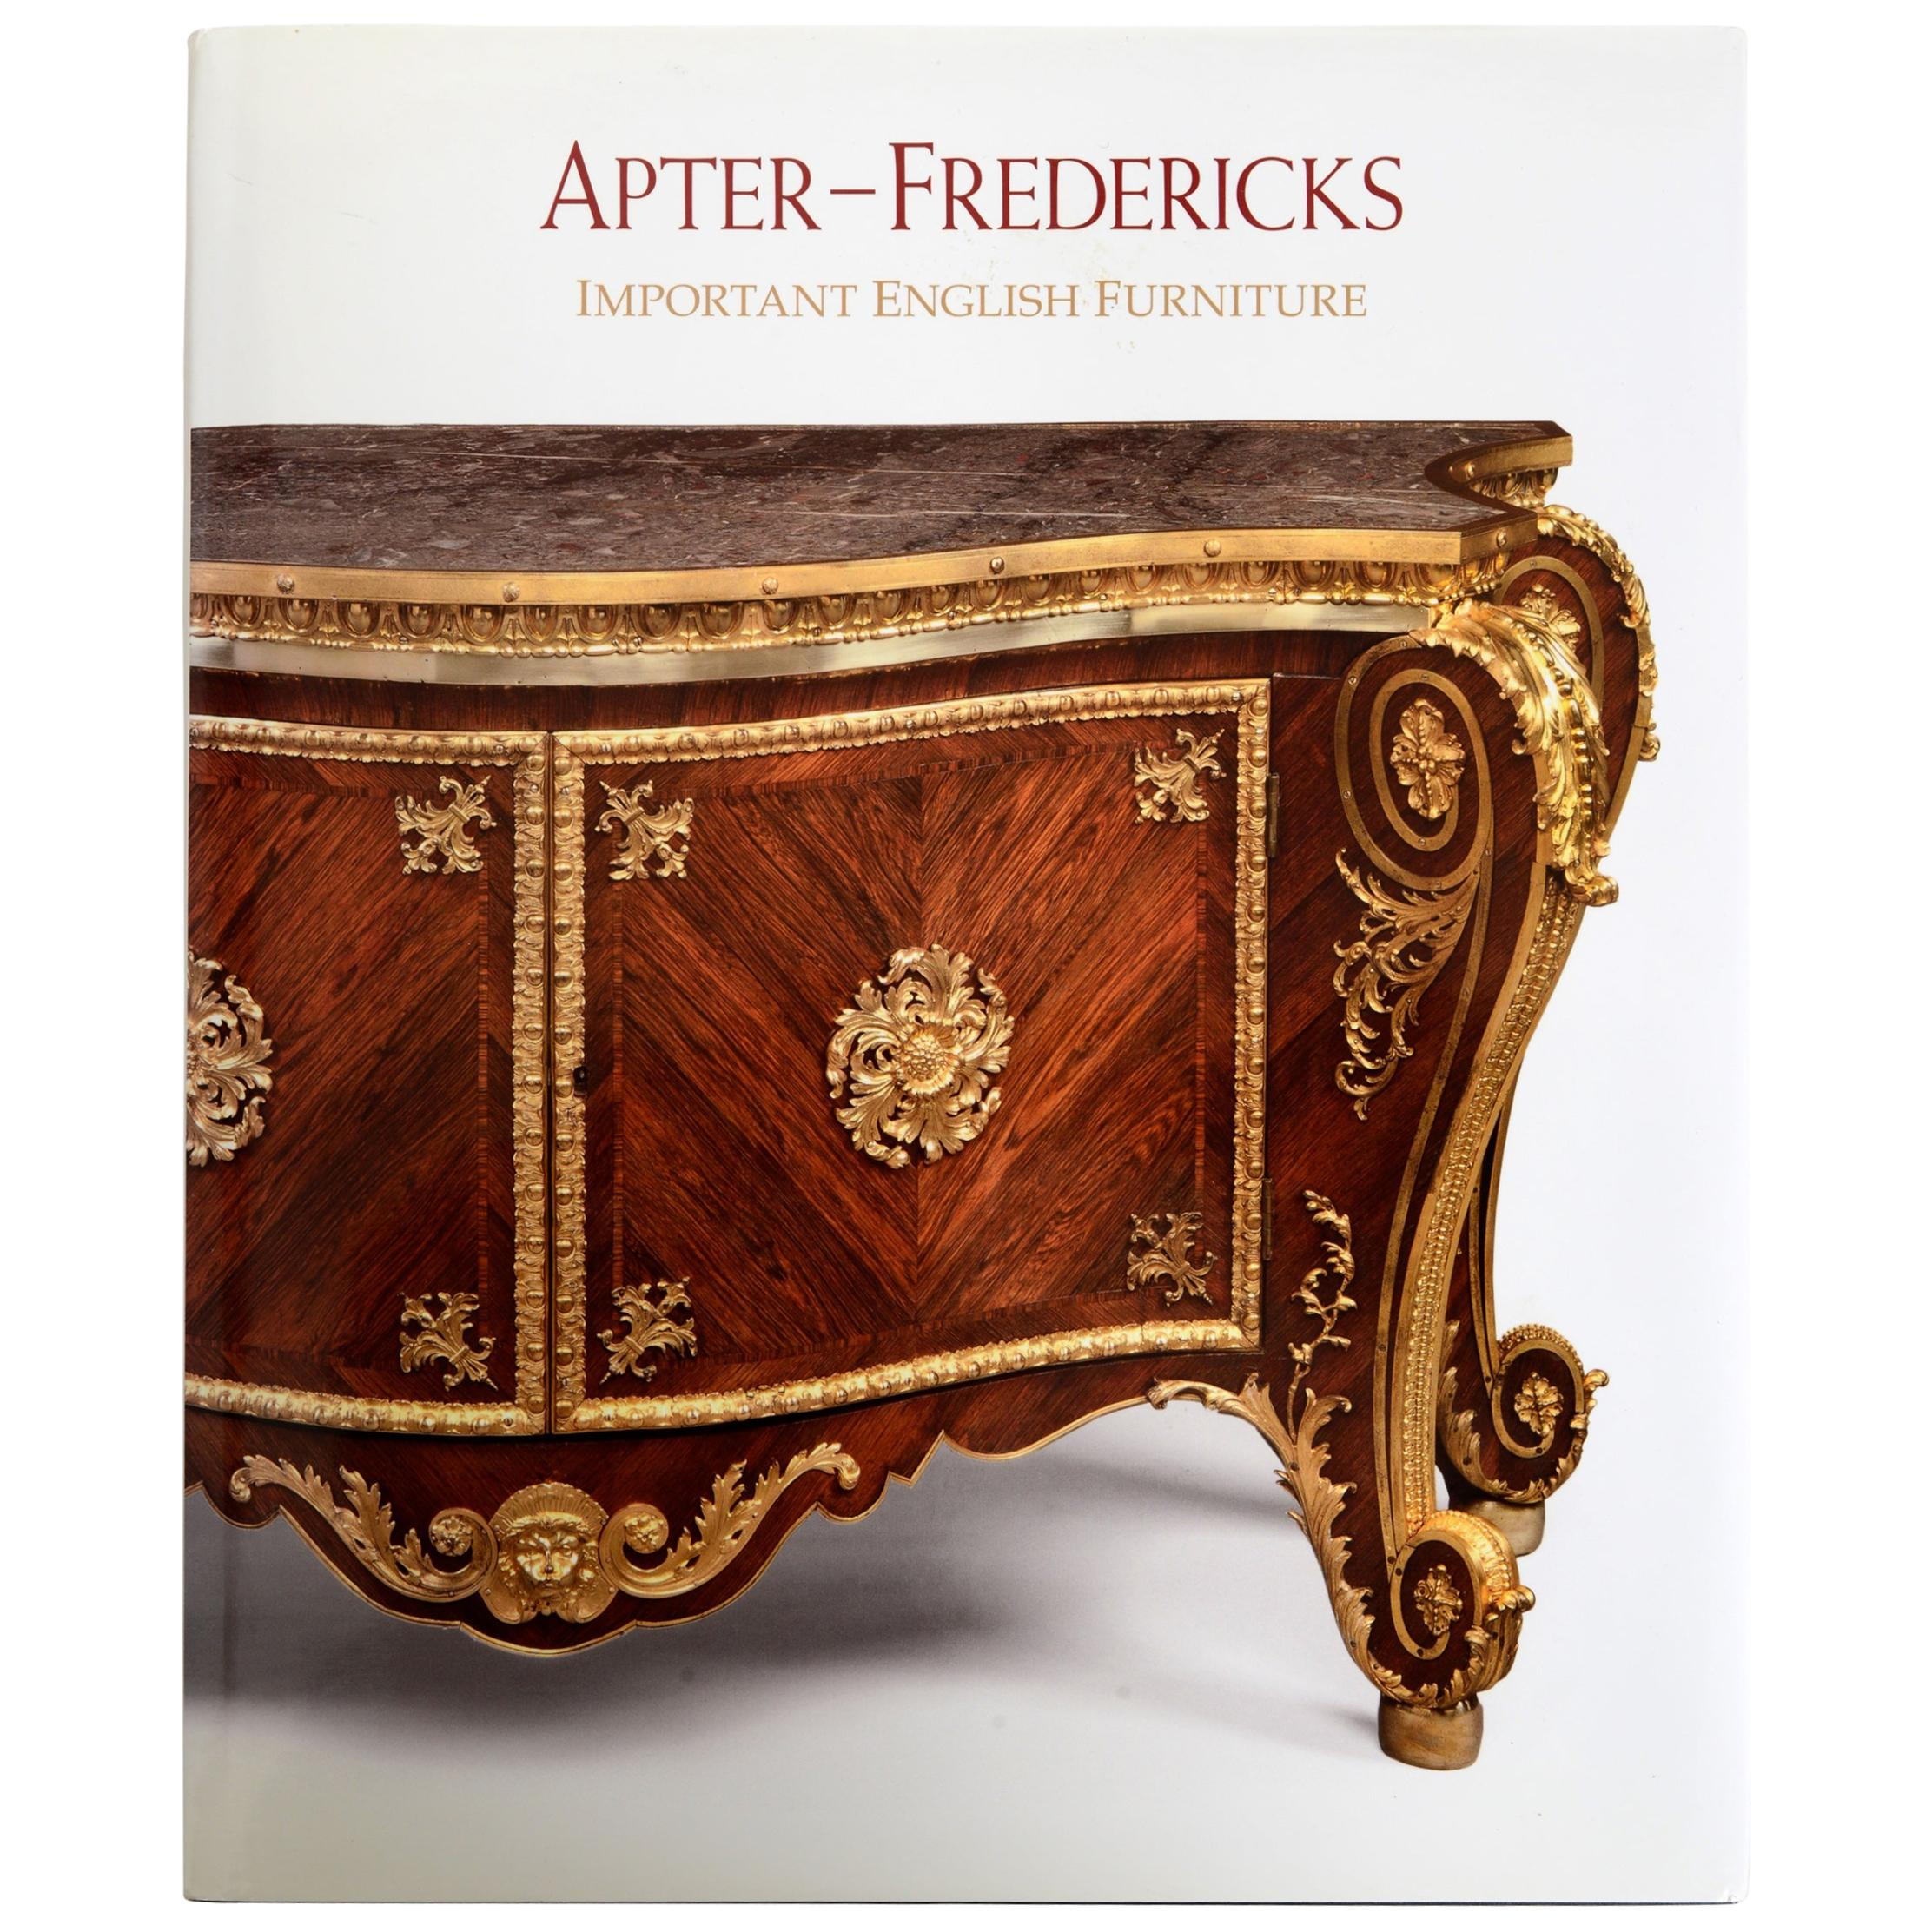 Apter-Fredericks Important English Furniture 2012 Catalog First Edition